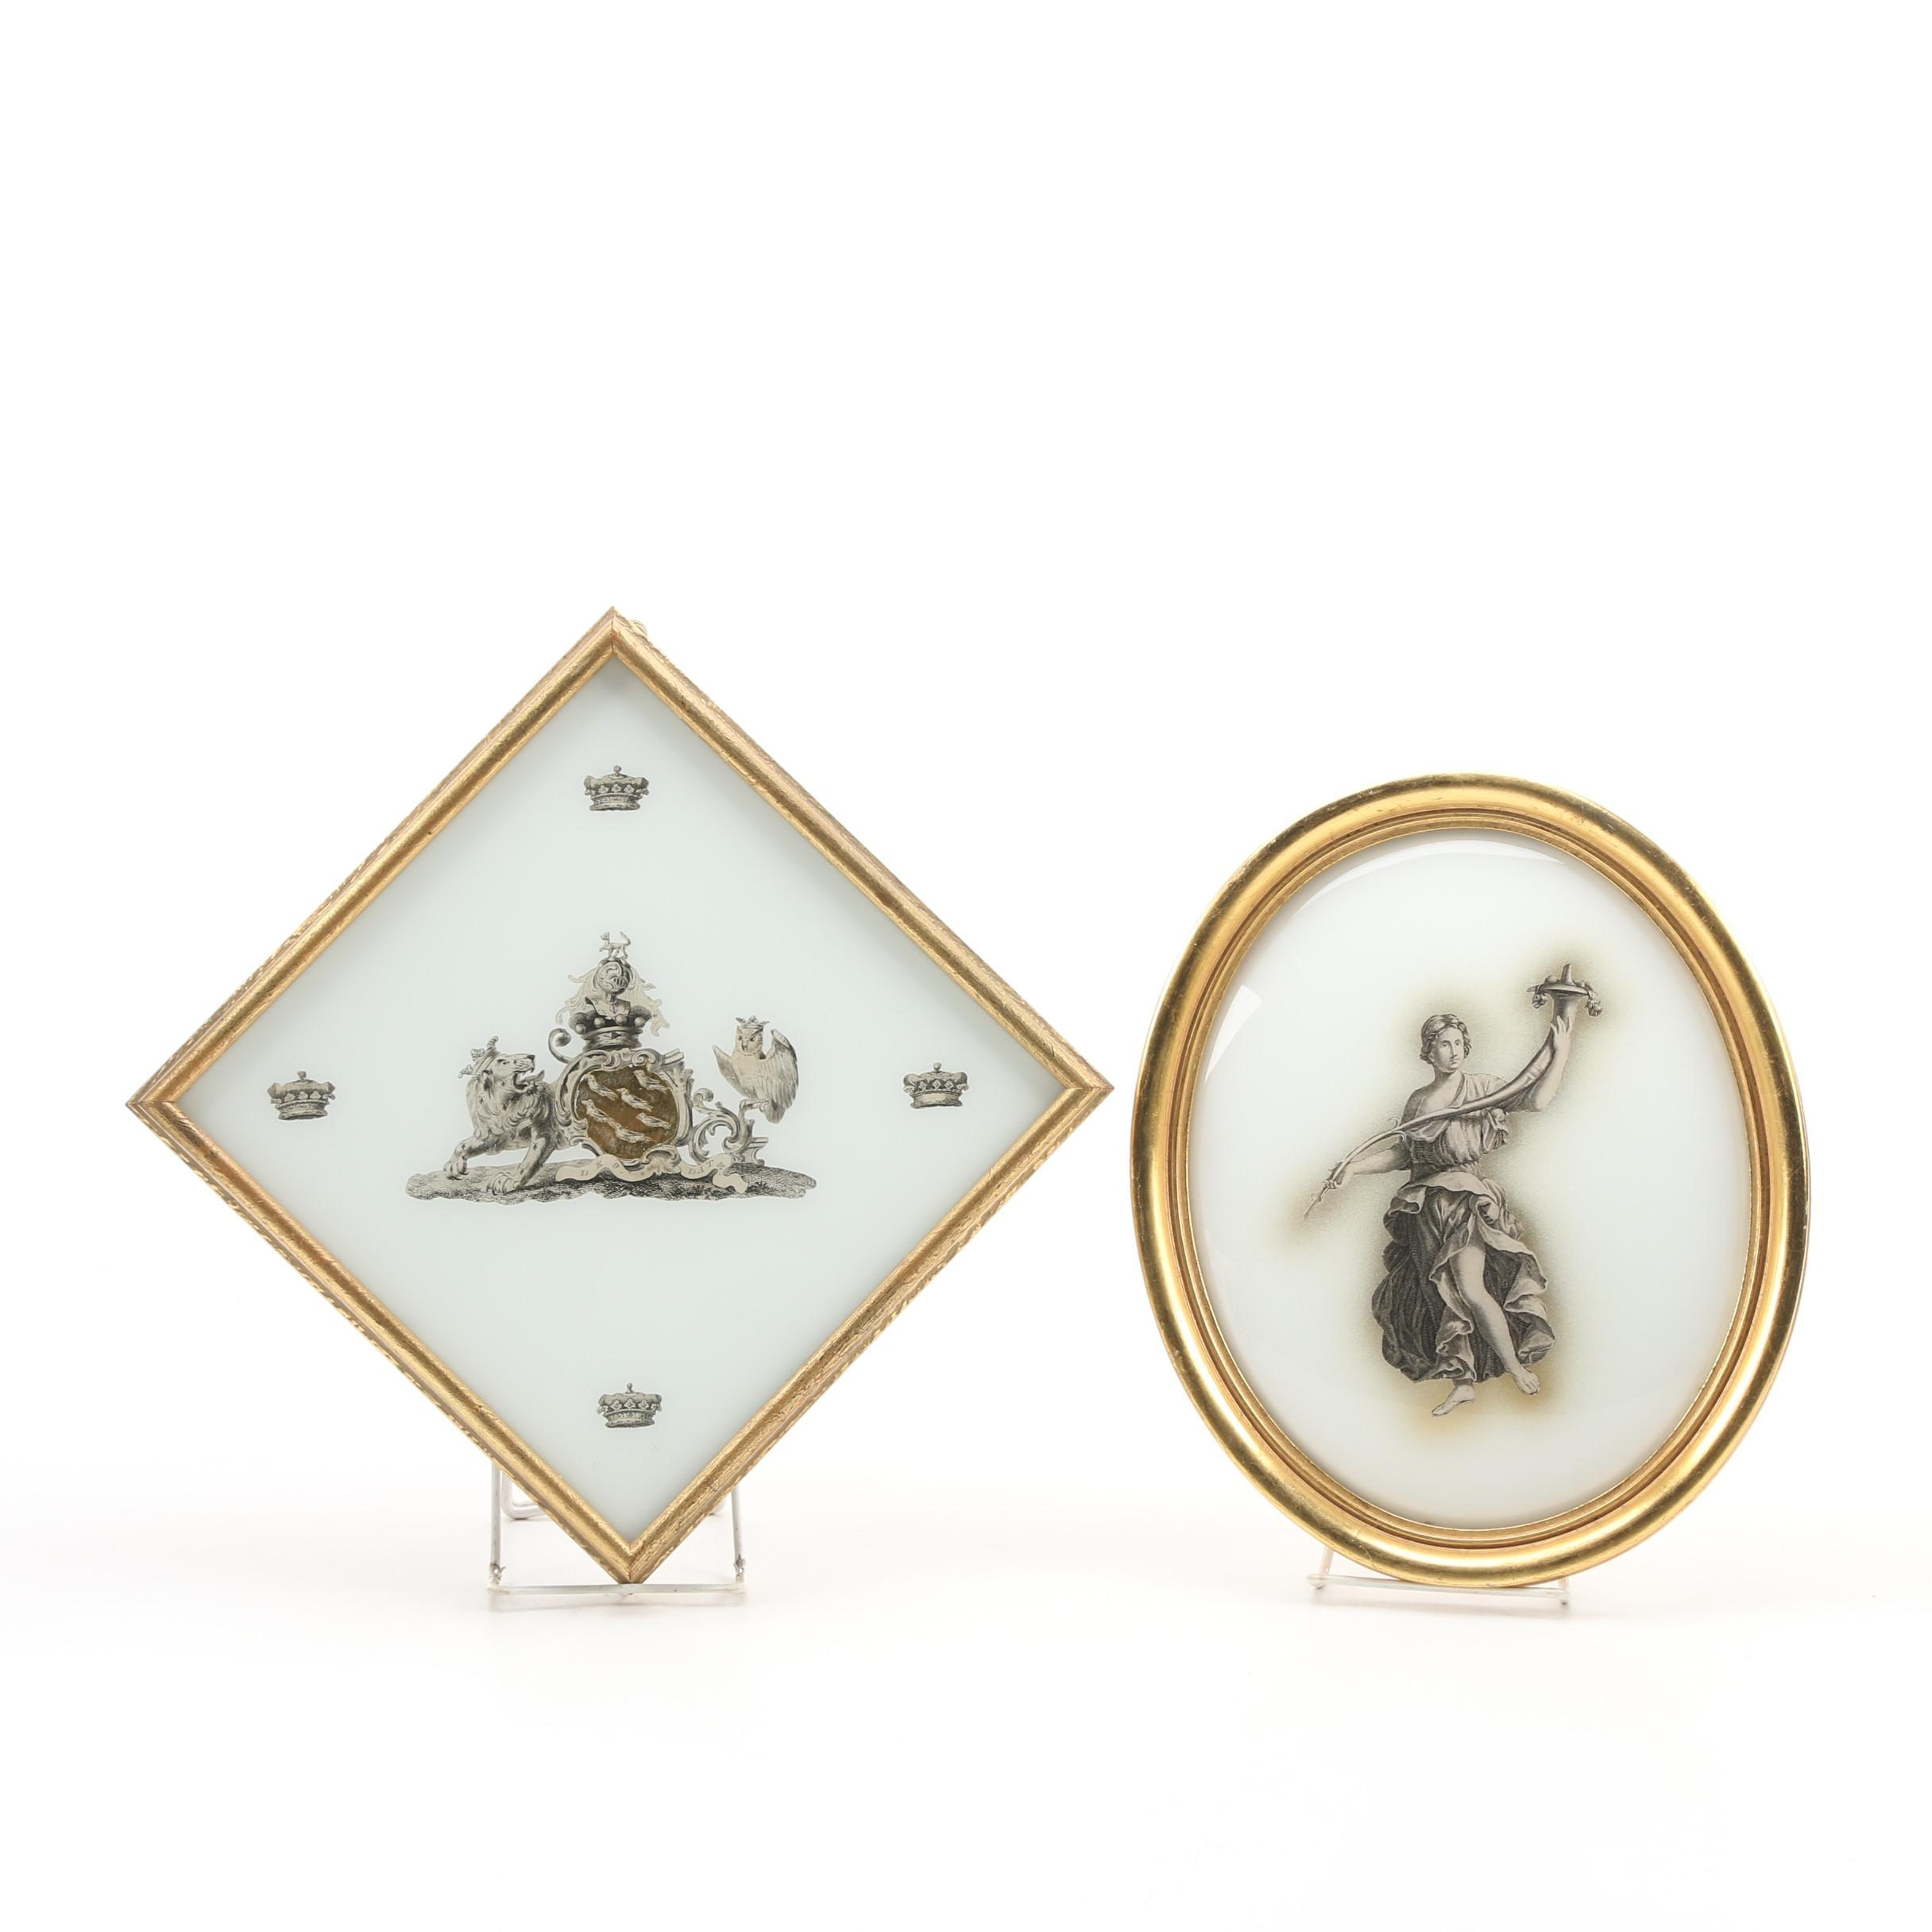 Neoclassical and 18th Century English Inspired Wall Hangings in Gilt Frames